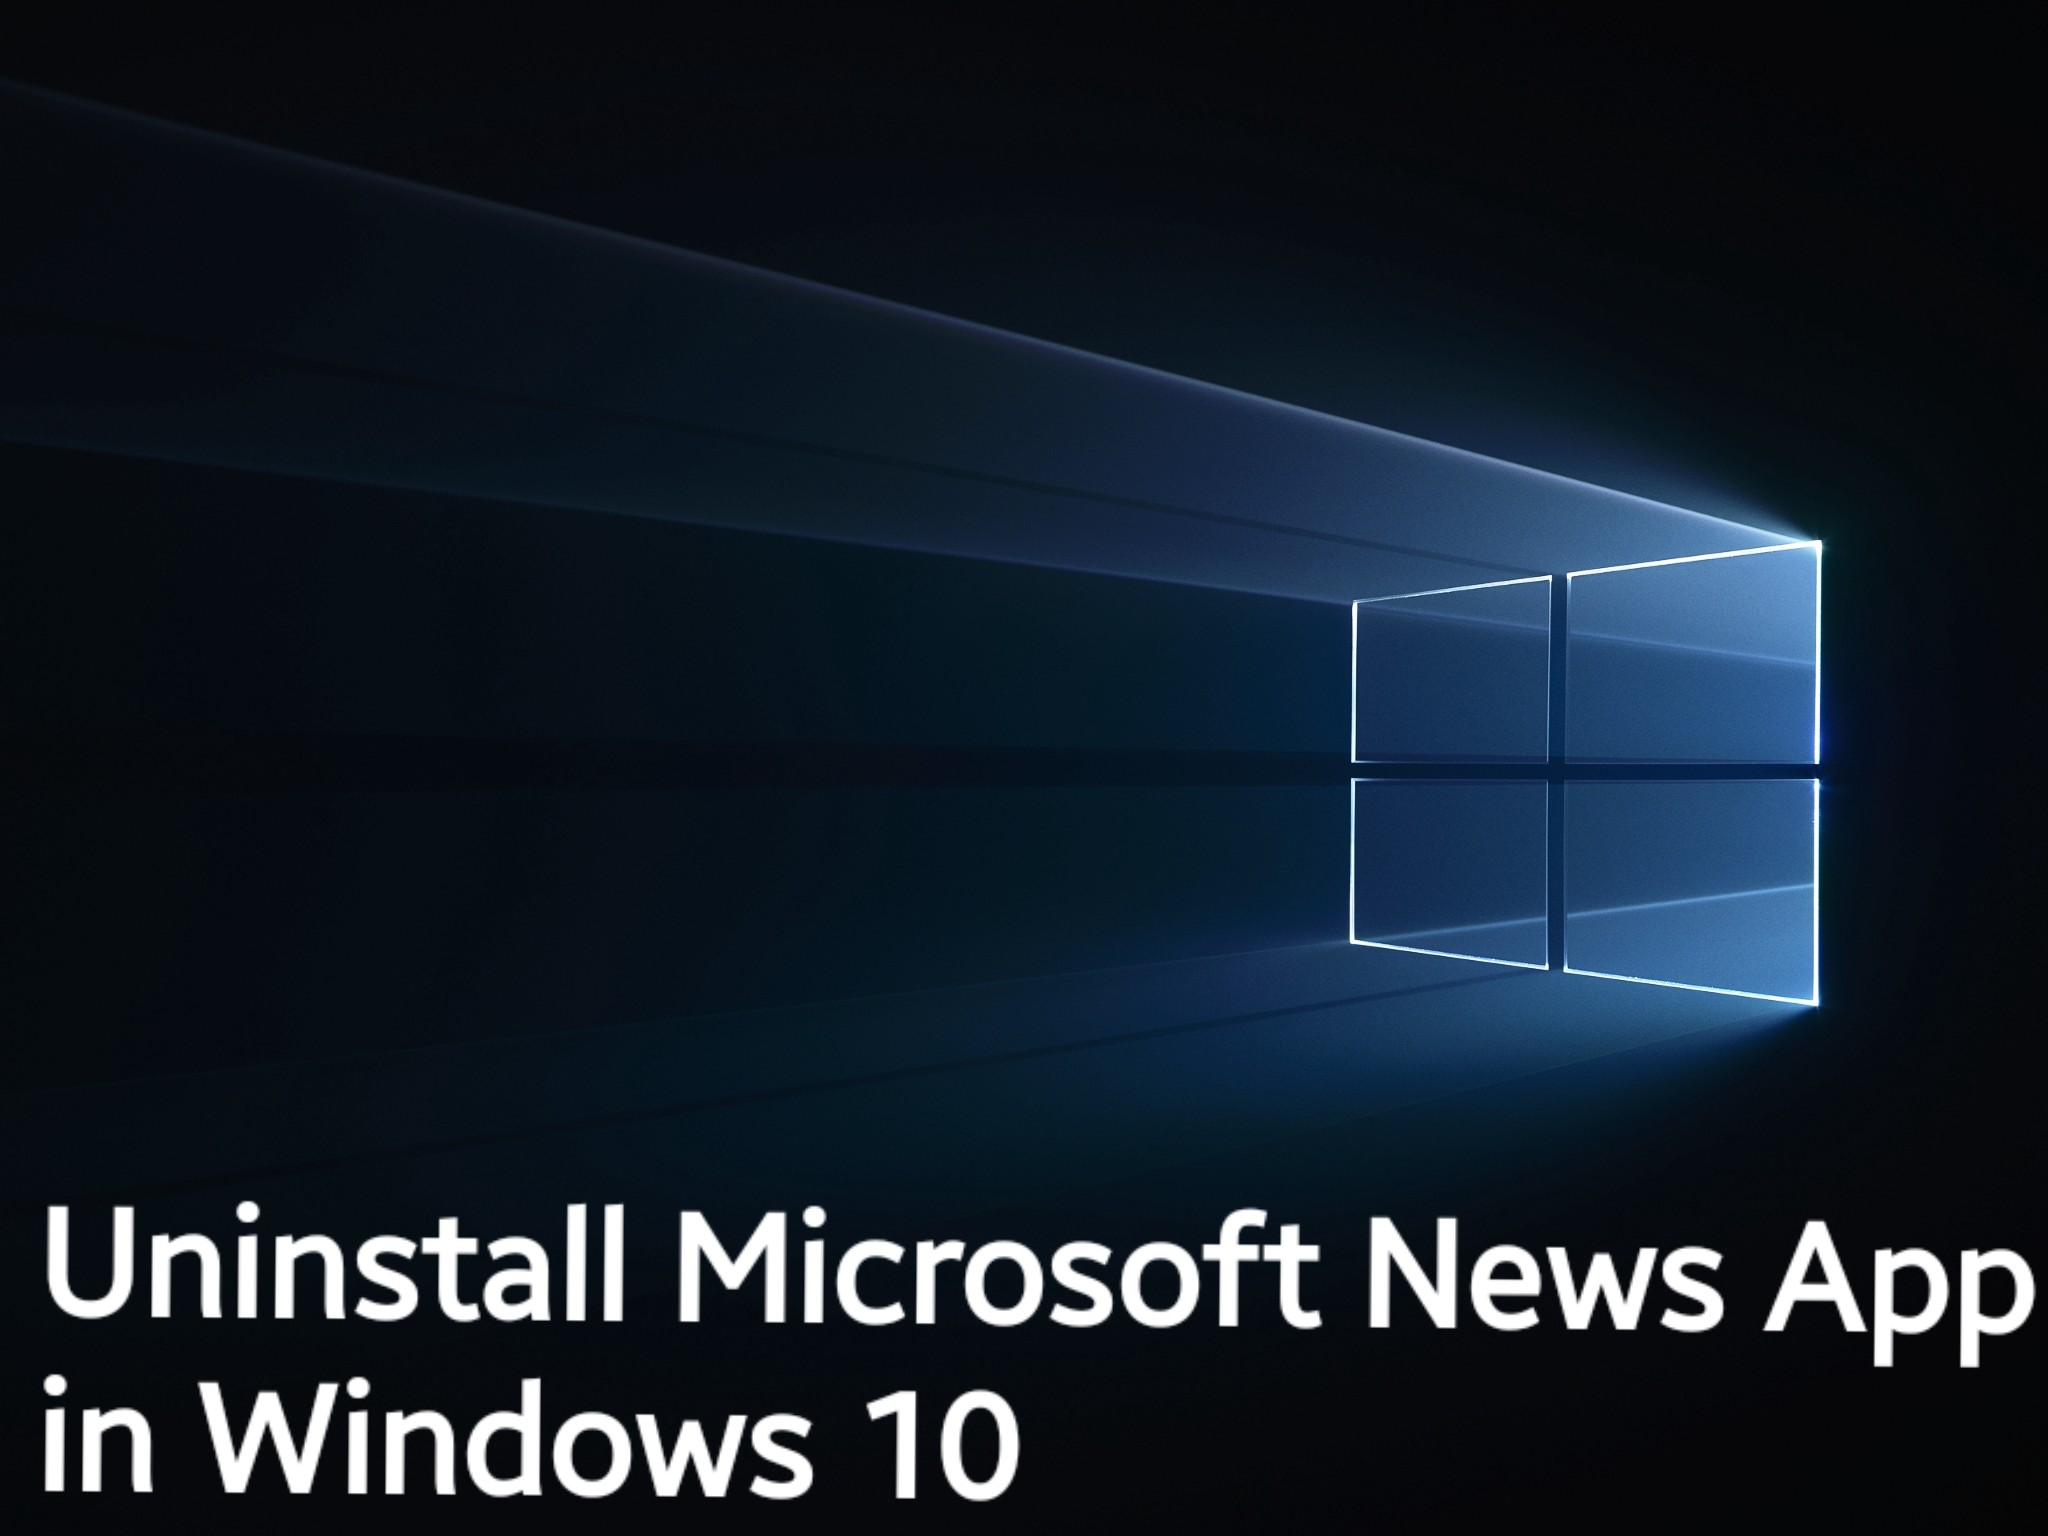 How to uninstall Microsoft News App in Windows 10